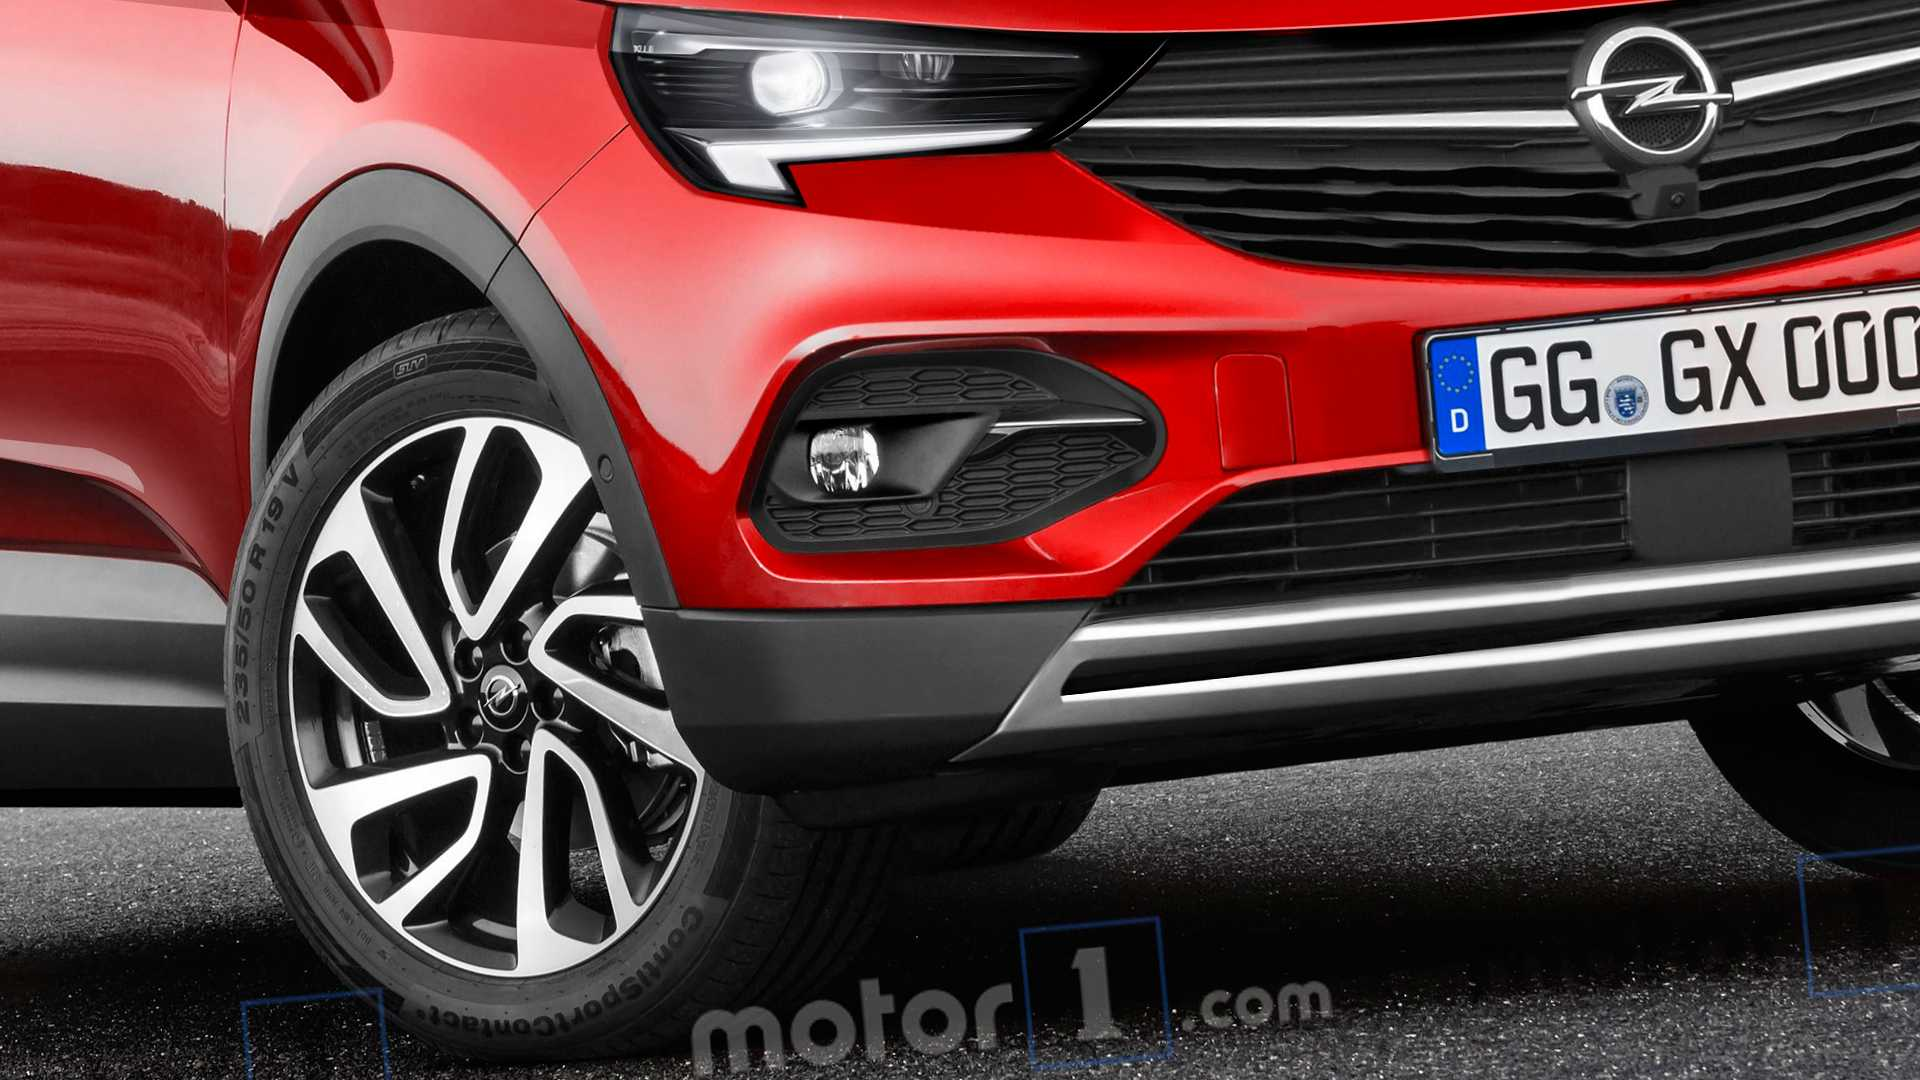 11 All New Der Neue Opel Mokka 2020 Specs